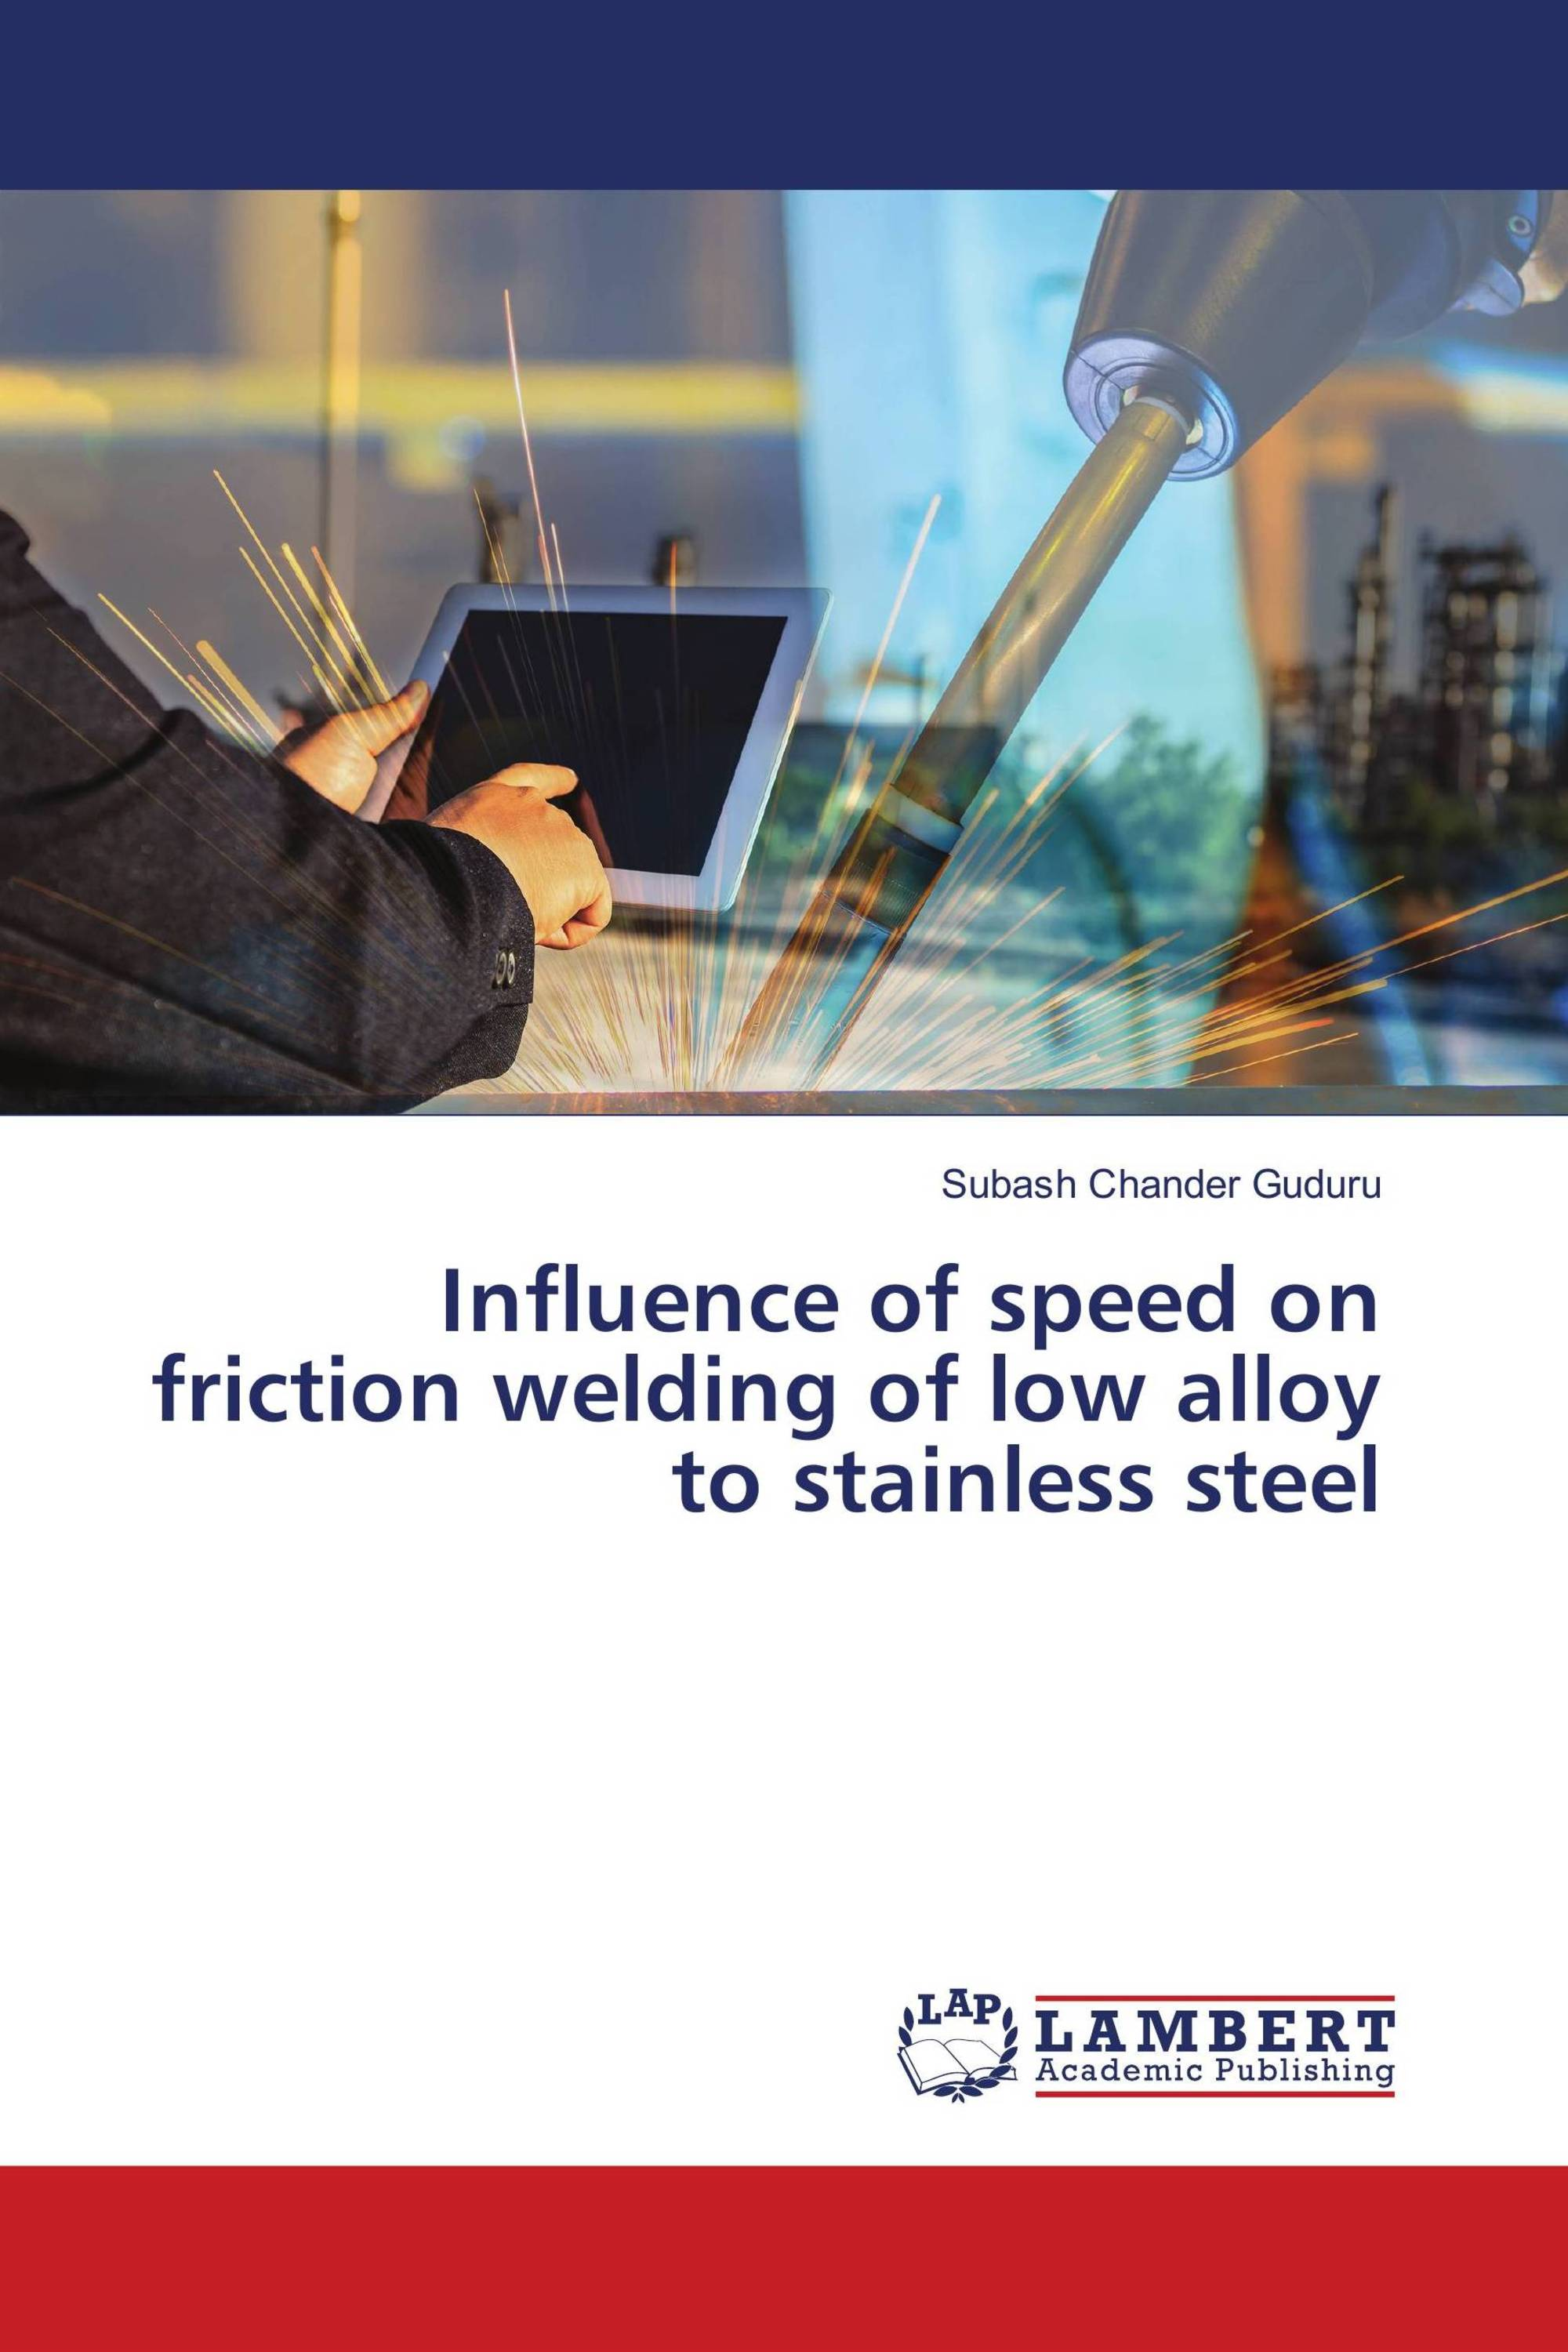 Influence of speed on friction welding of low alloy to stainless steel